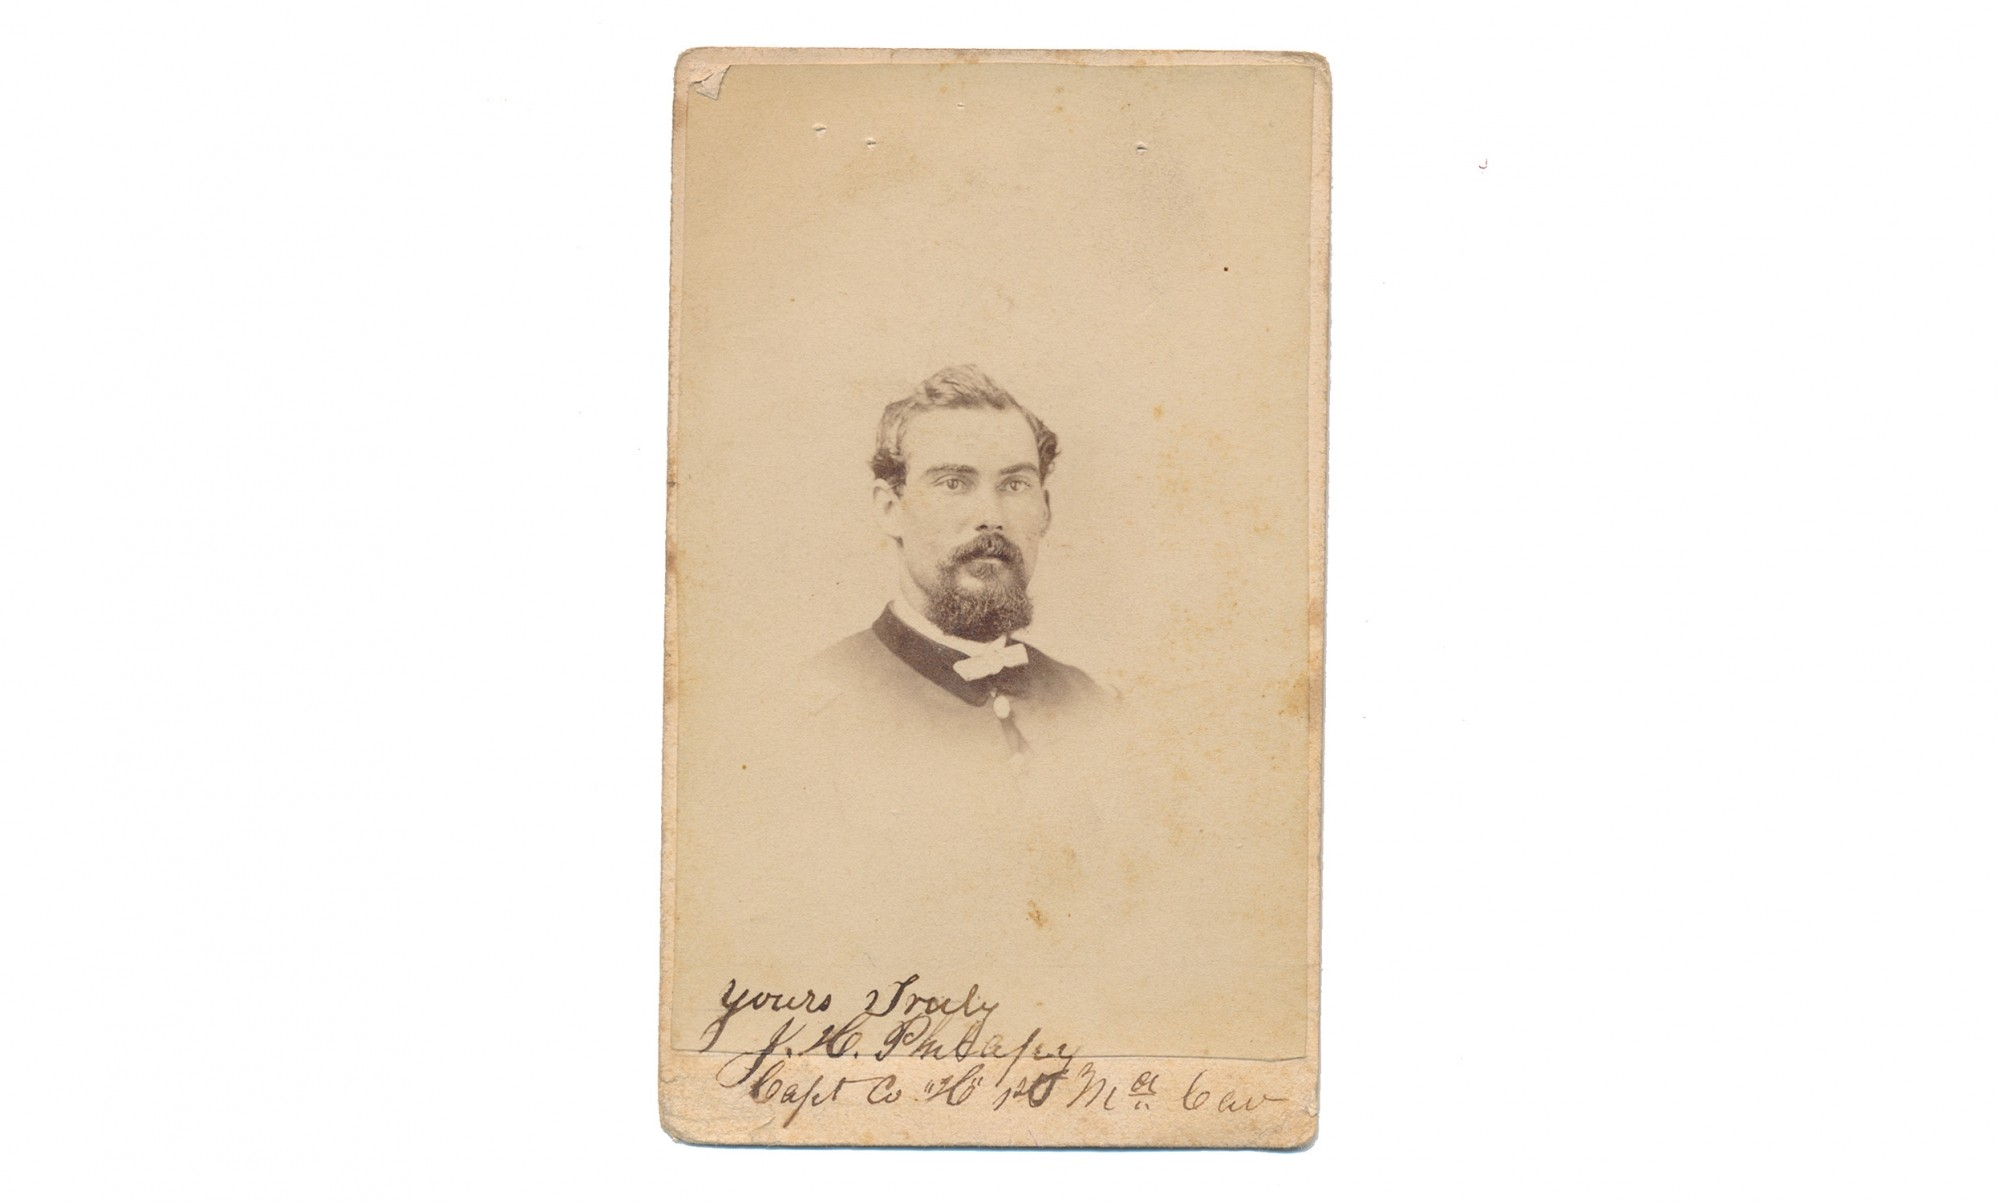 CDV OF CAPTAIN JAMES H. PHILAPY, 1st MD CAVALRY, US